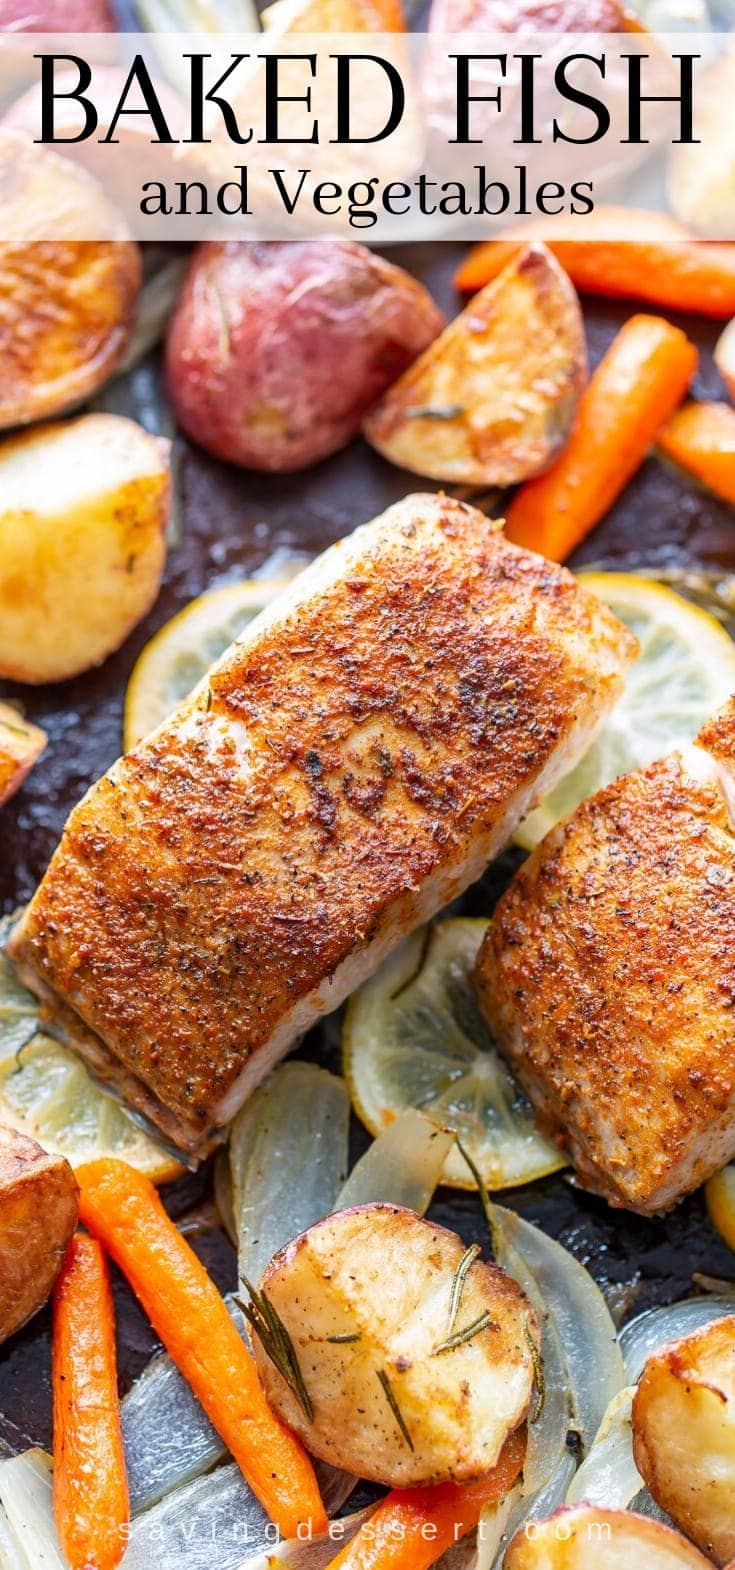 A sheet pan with baked fish and vegetables